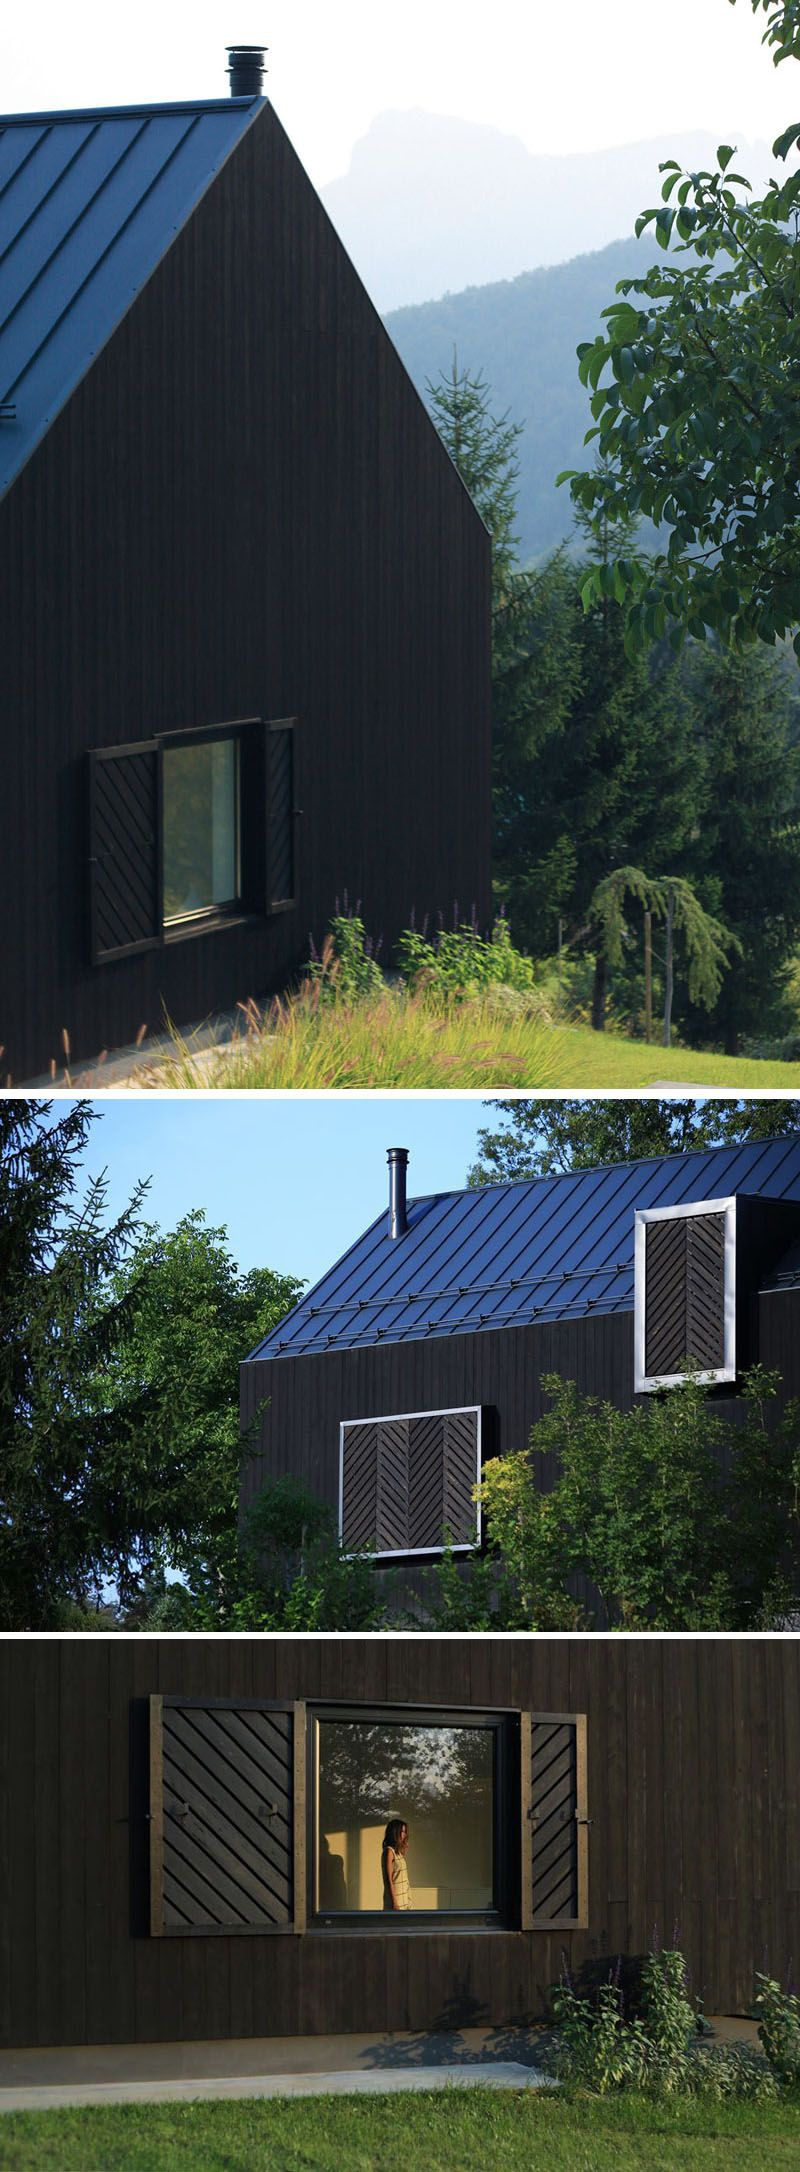 This Small Black House Sits On A Slope In The Croatian Countryside Black House Island House Architecture Exterior